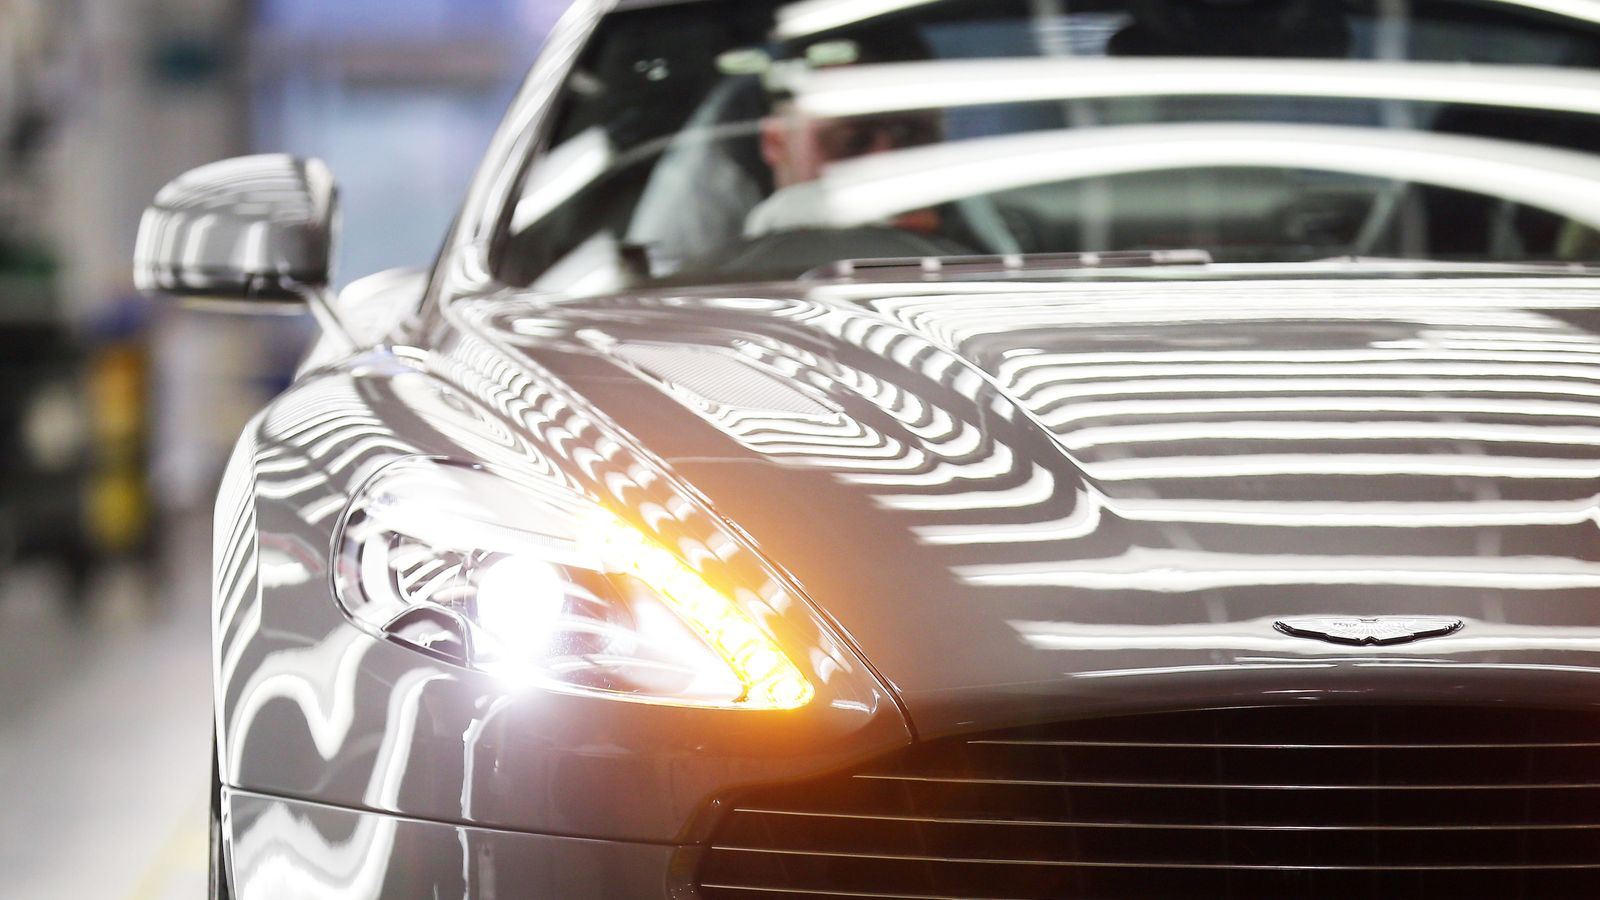 Aston Martin to offer discounted stock in £5bn listing